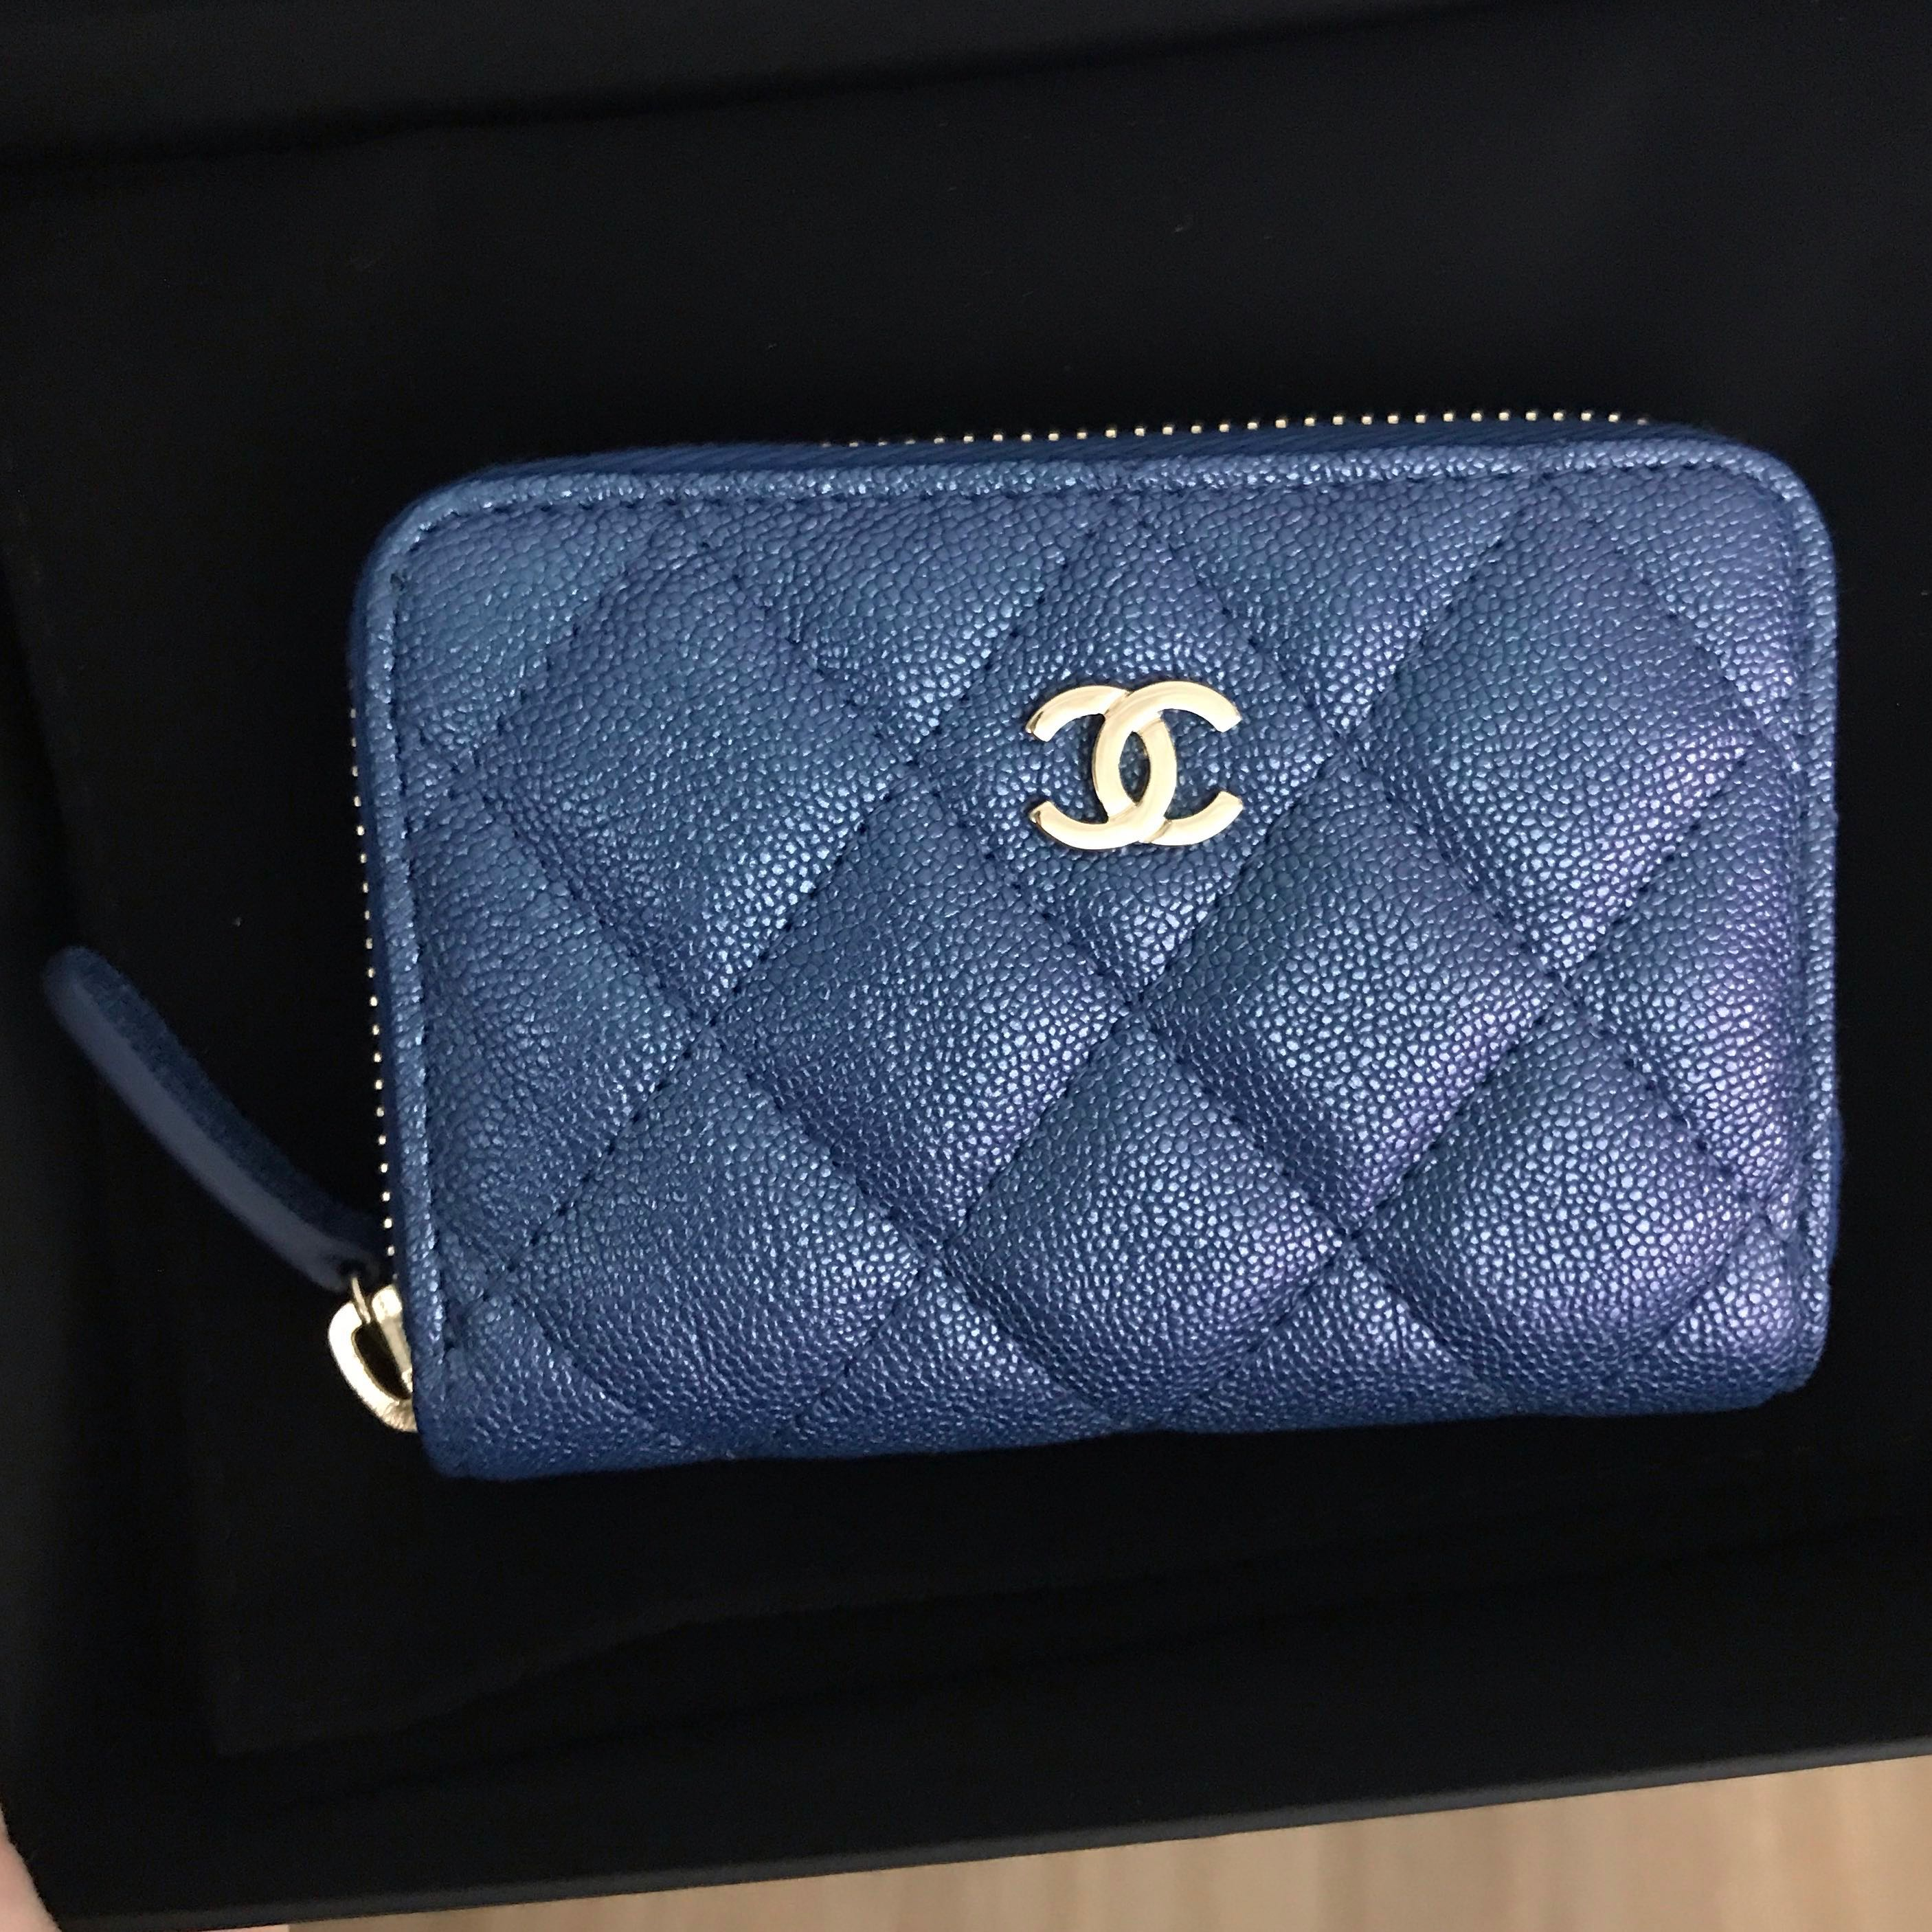 3524068bcfa0d5 Chanel 19S Iridescent Blue Zippy Cardholder with Back Pocket / 4 Card  Slots, Luxury, Bags & Wallets, Wallets on Carousell